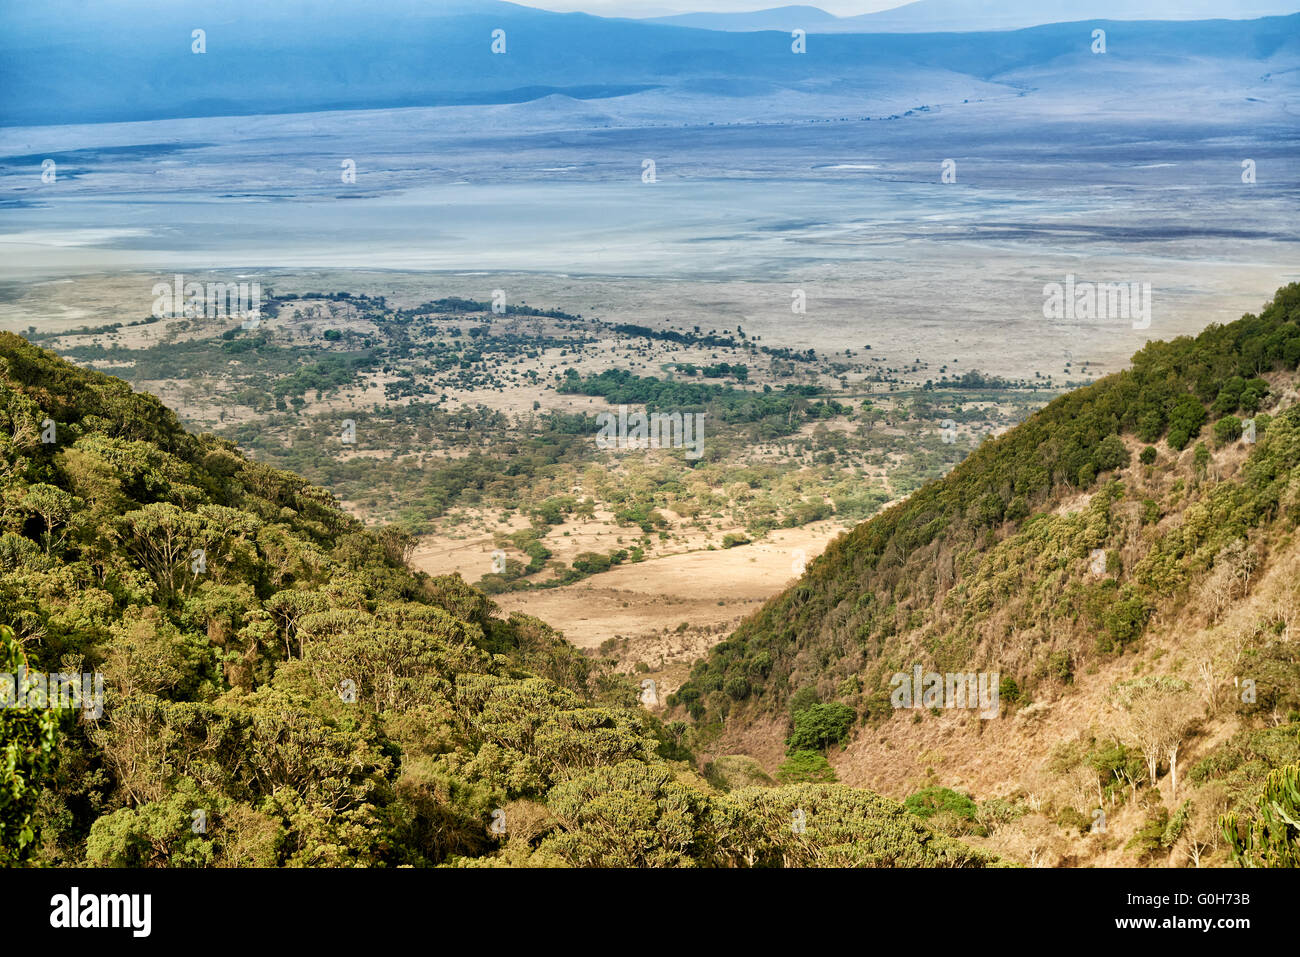 view from the rim into the Ngorongoro crater, Ngorongoro Conservation Area, UNESCO world heritage site, Tanzania, - Stock Image